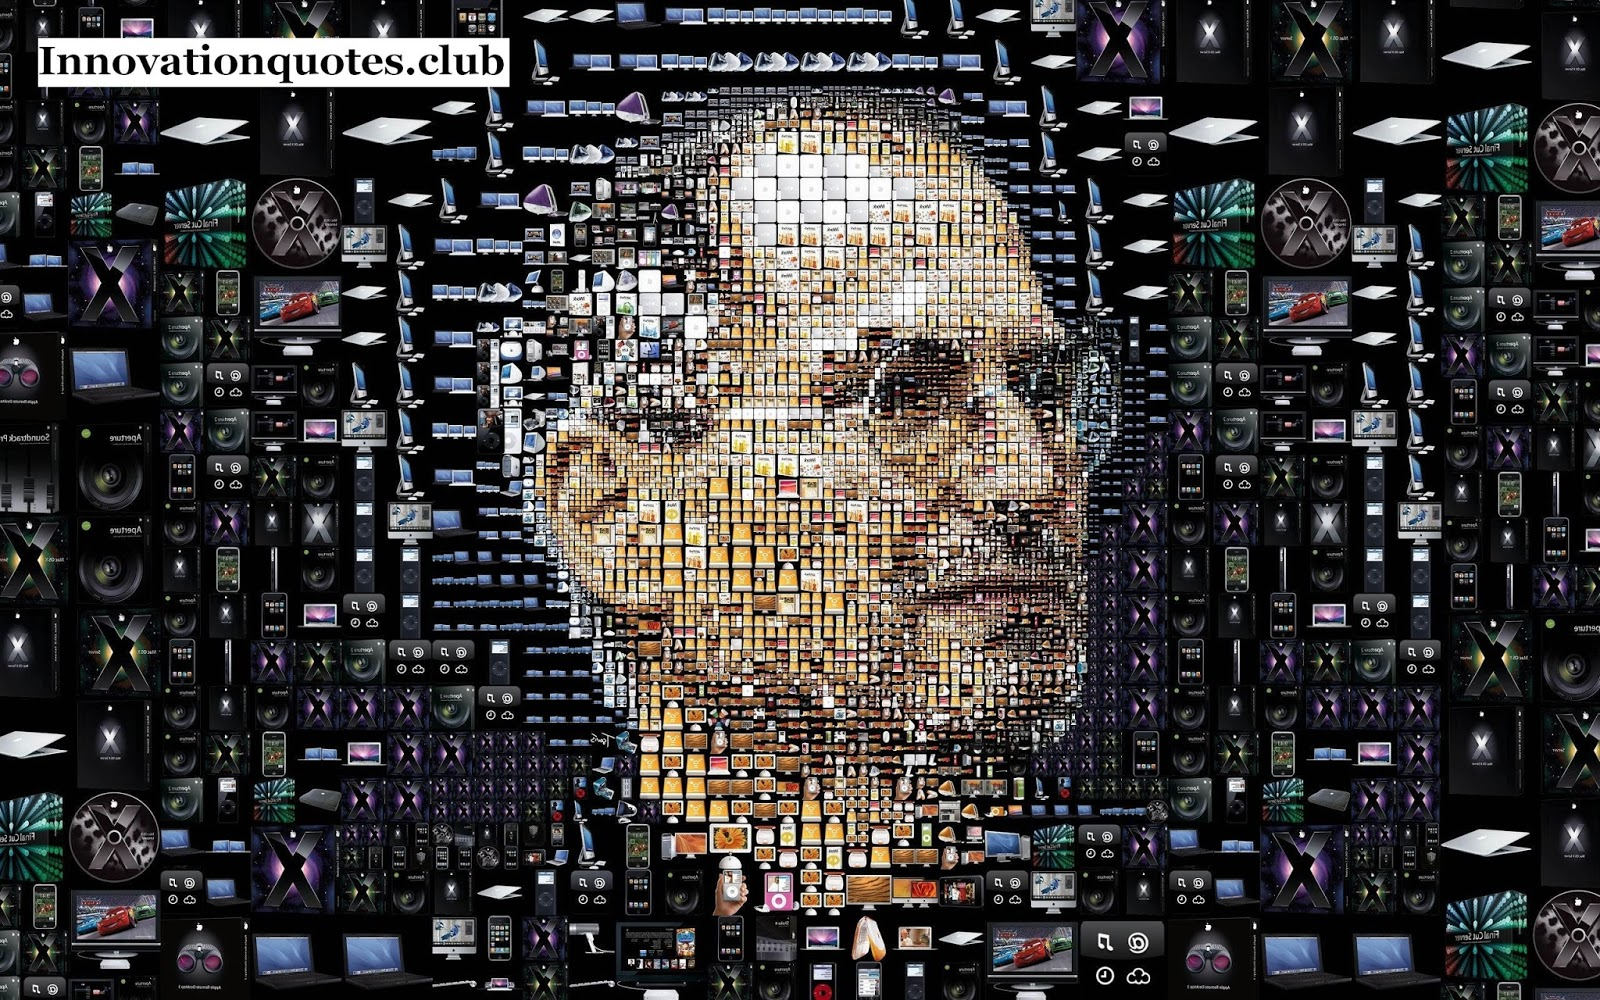 Creativity and innovation quotes - Steve Jobs